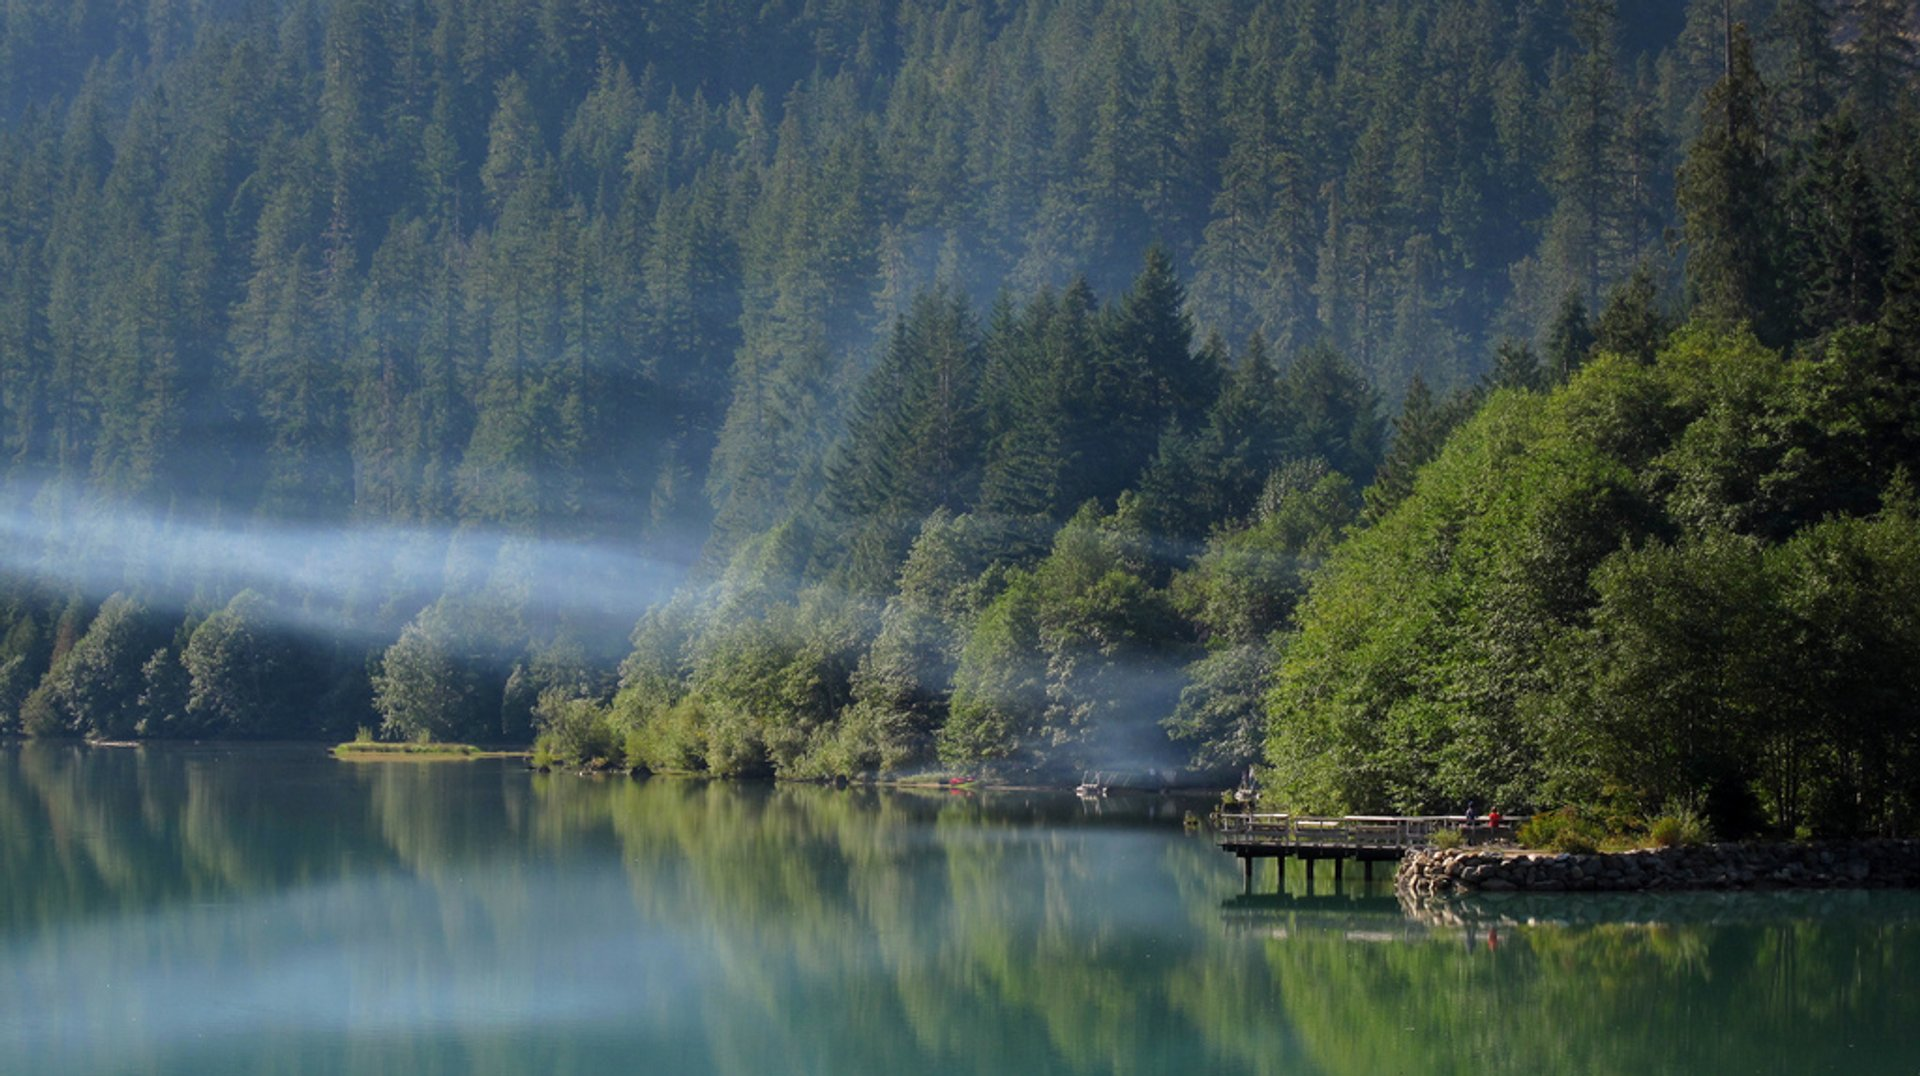 Fishing pier on Diablo Lake in Colonial Creek Campground, Washington 2020